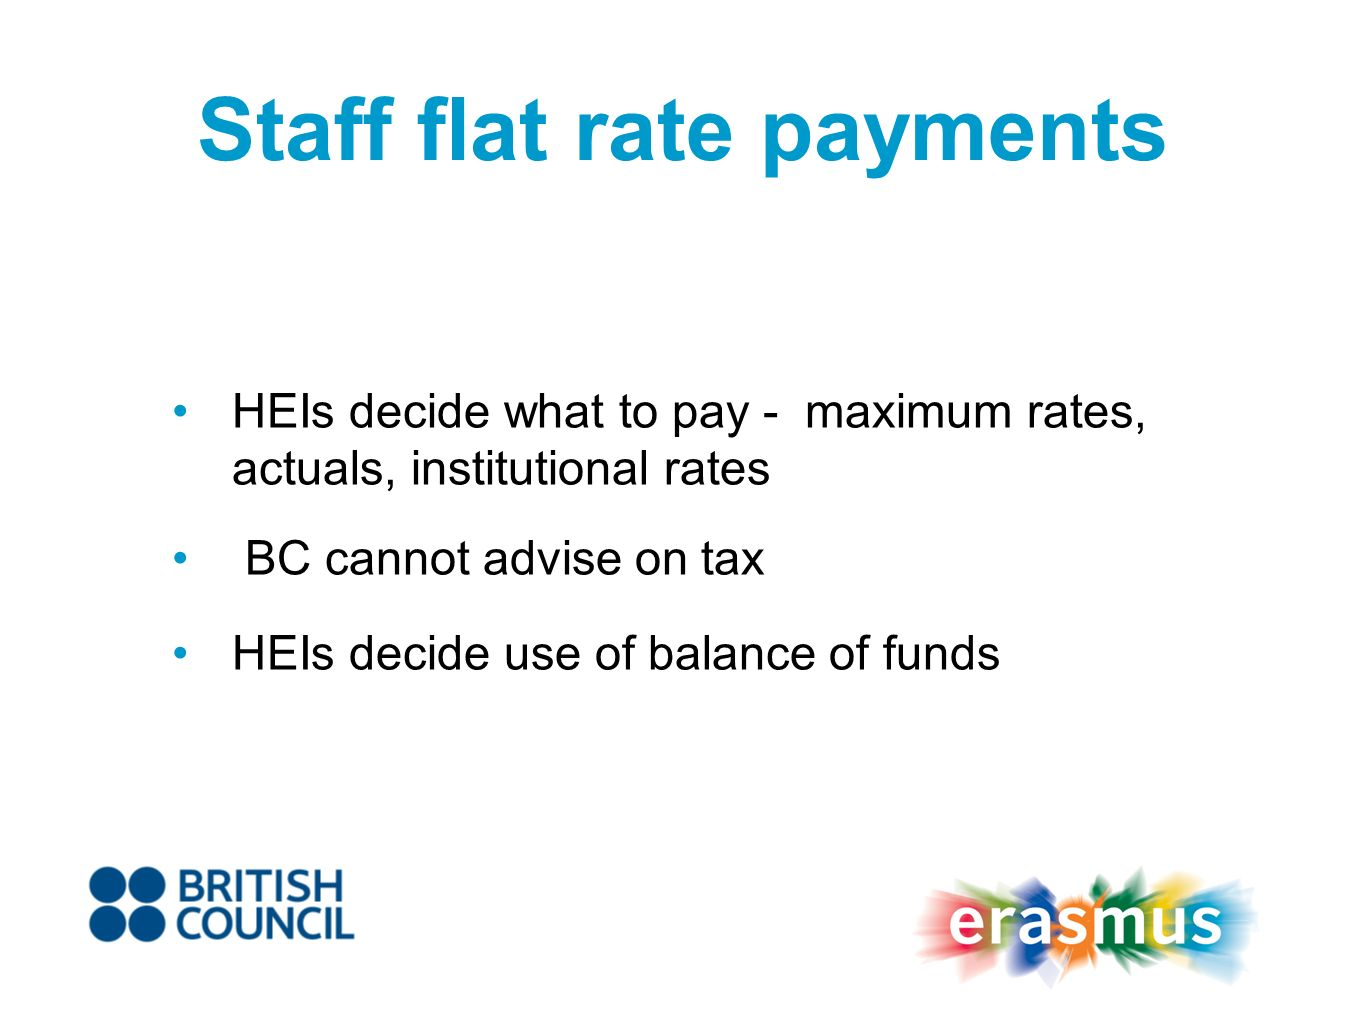 HEIs decide what to pay - maximum rates, actuals, institutional rates BC cannot advise on tax HEIs decide use of balance of funds Staff flat rate payments